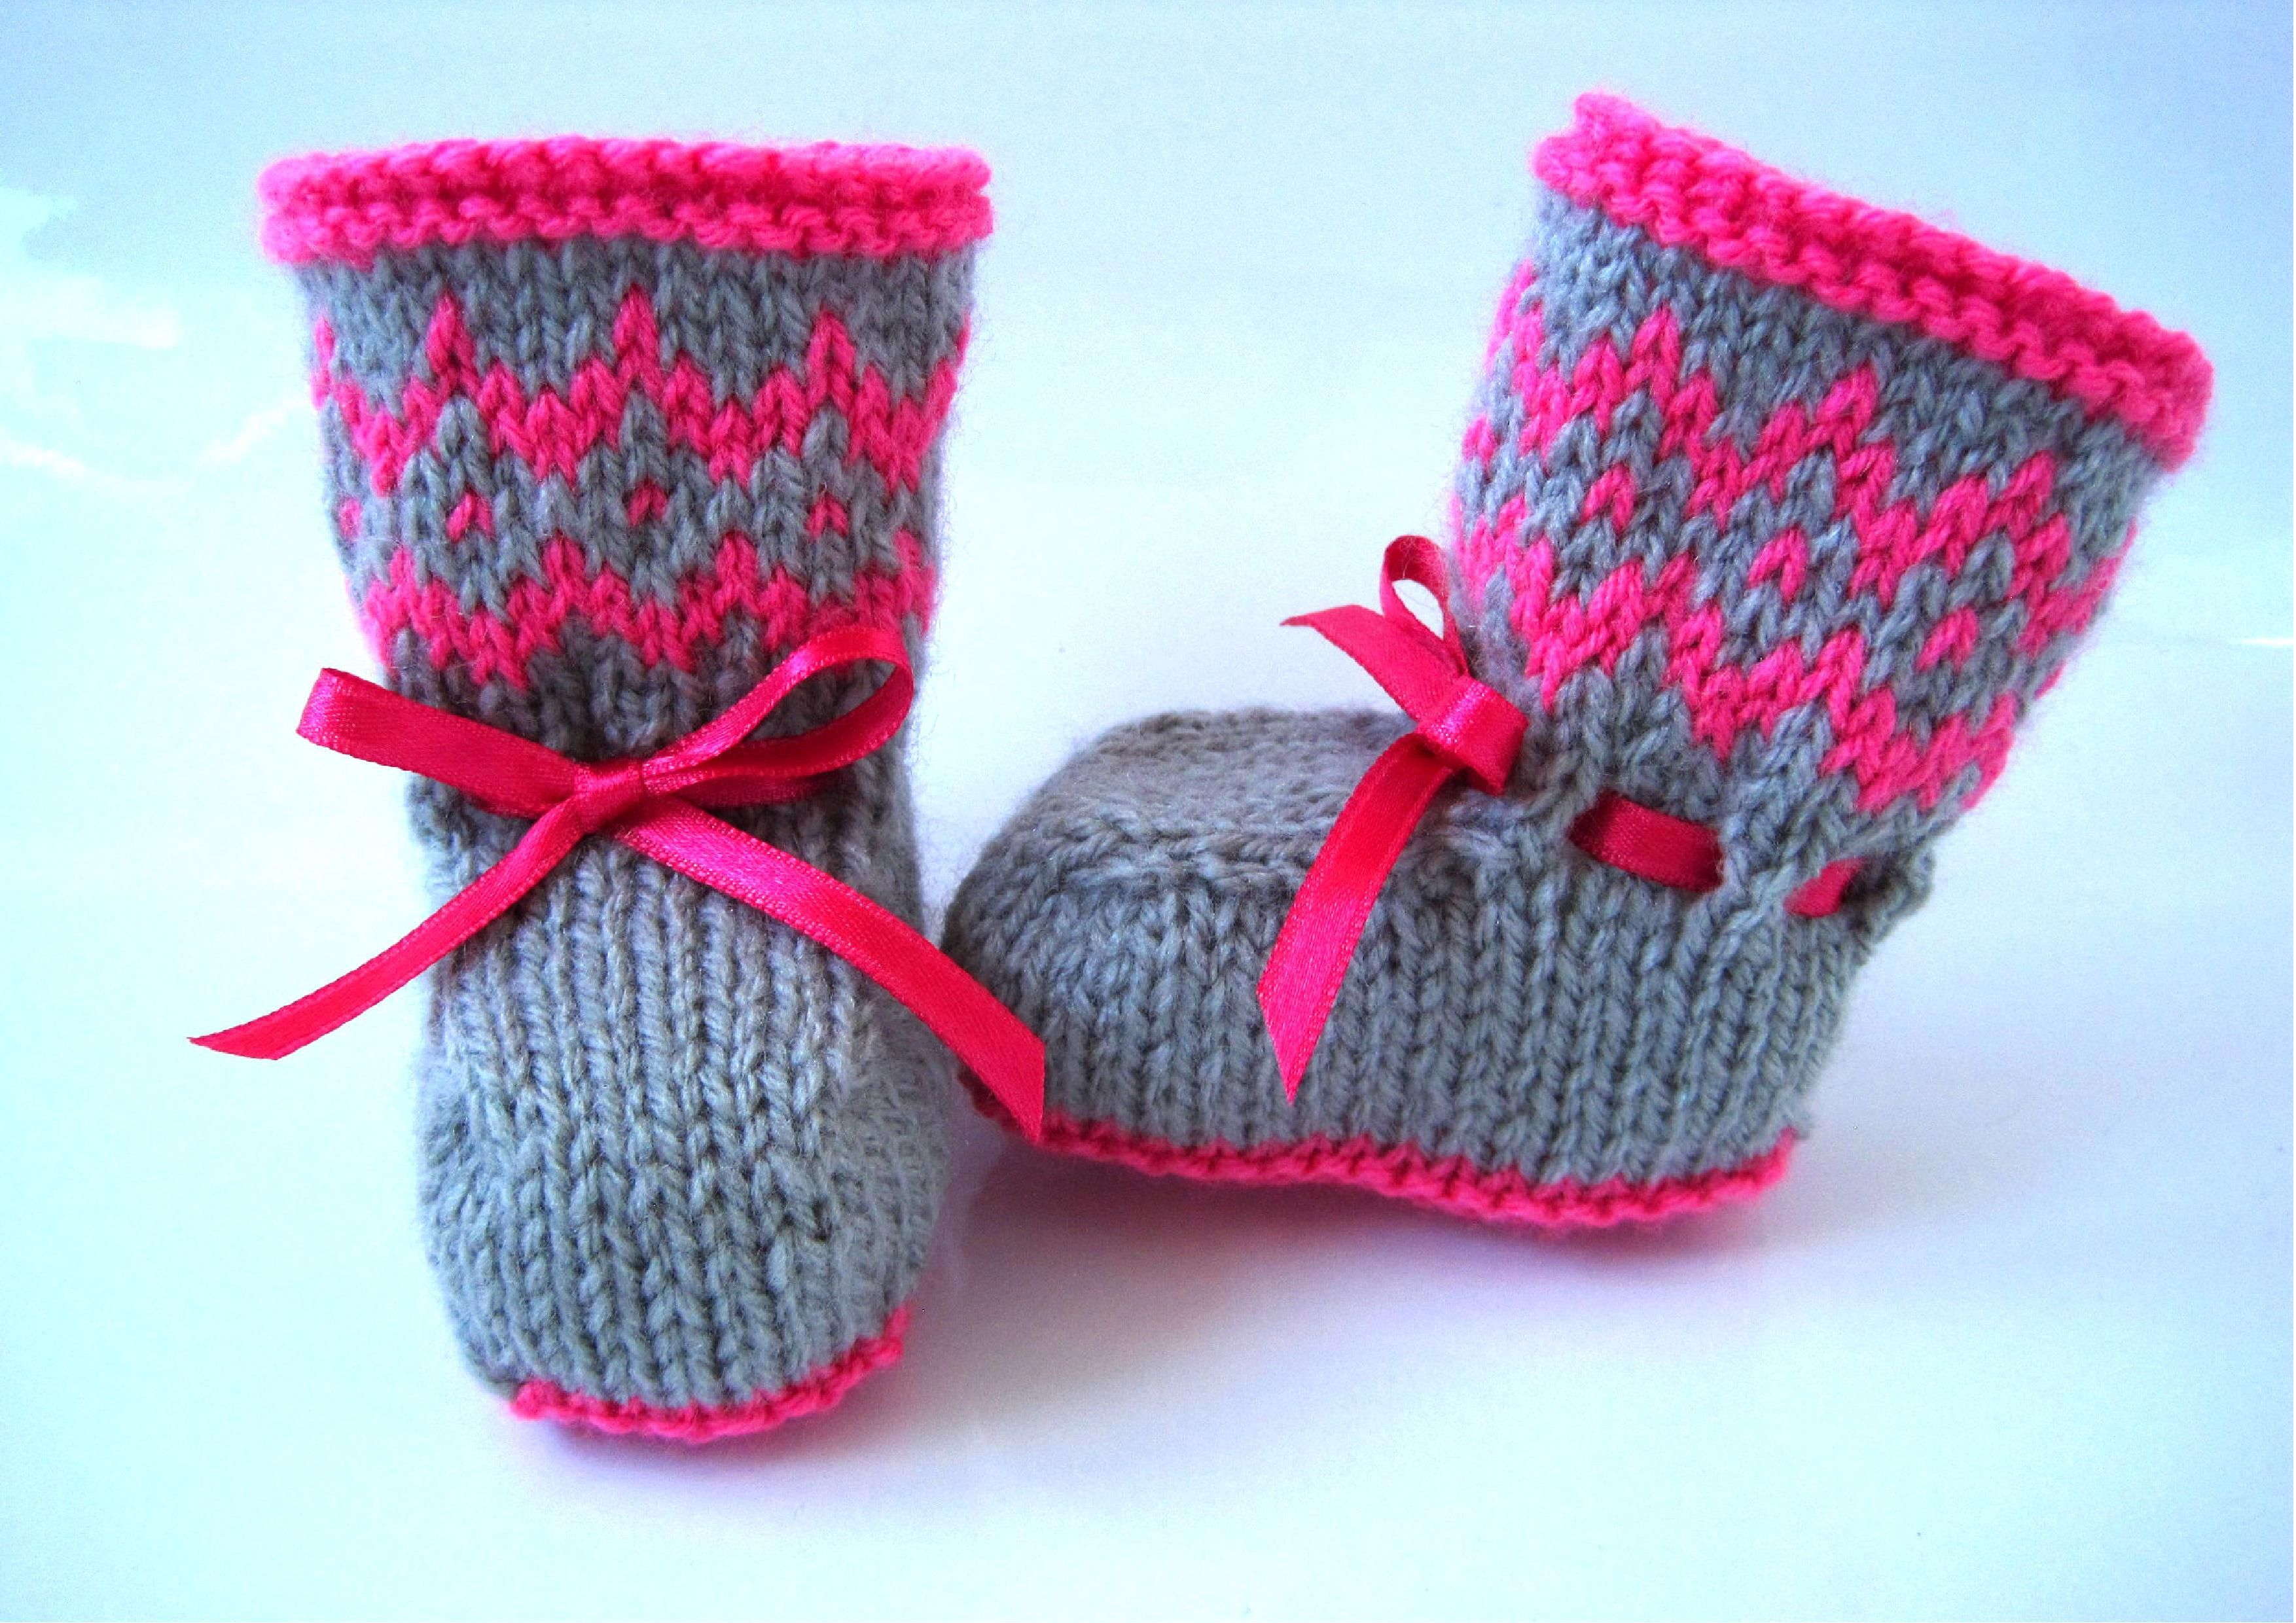 knitting pattern baby booties fairisle colour-work intarsia pink ...